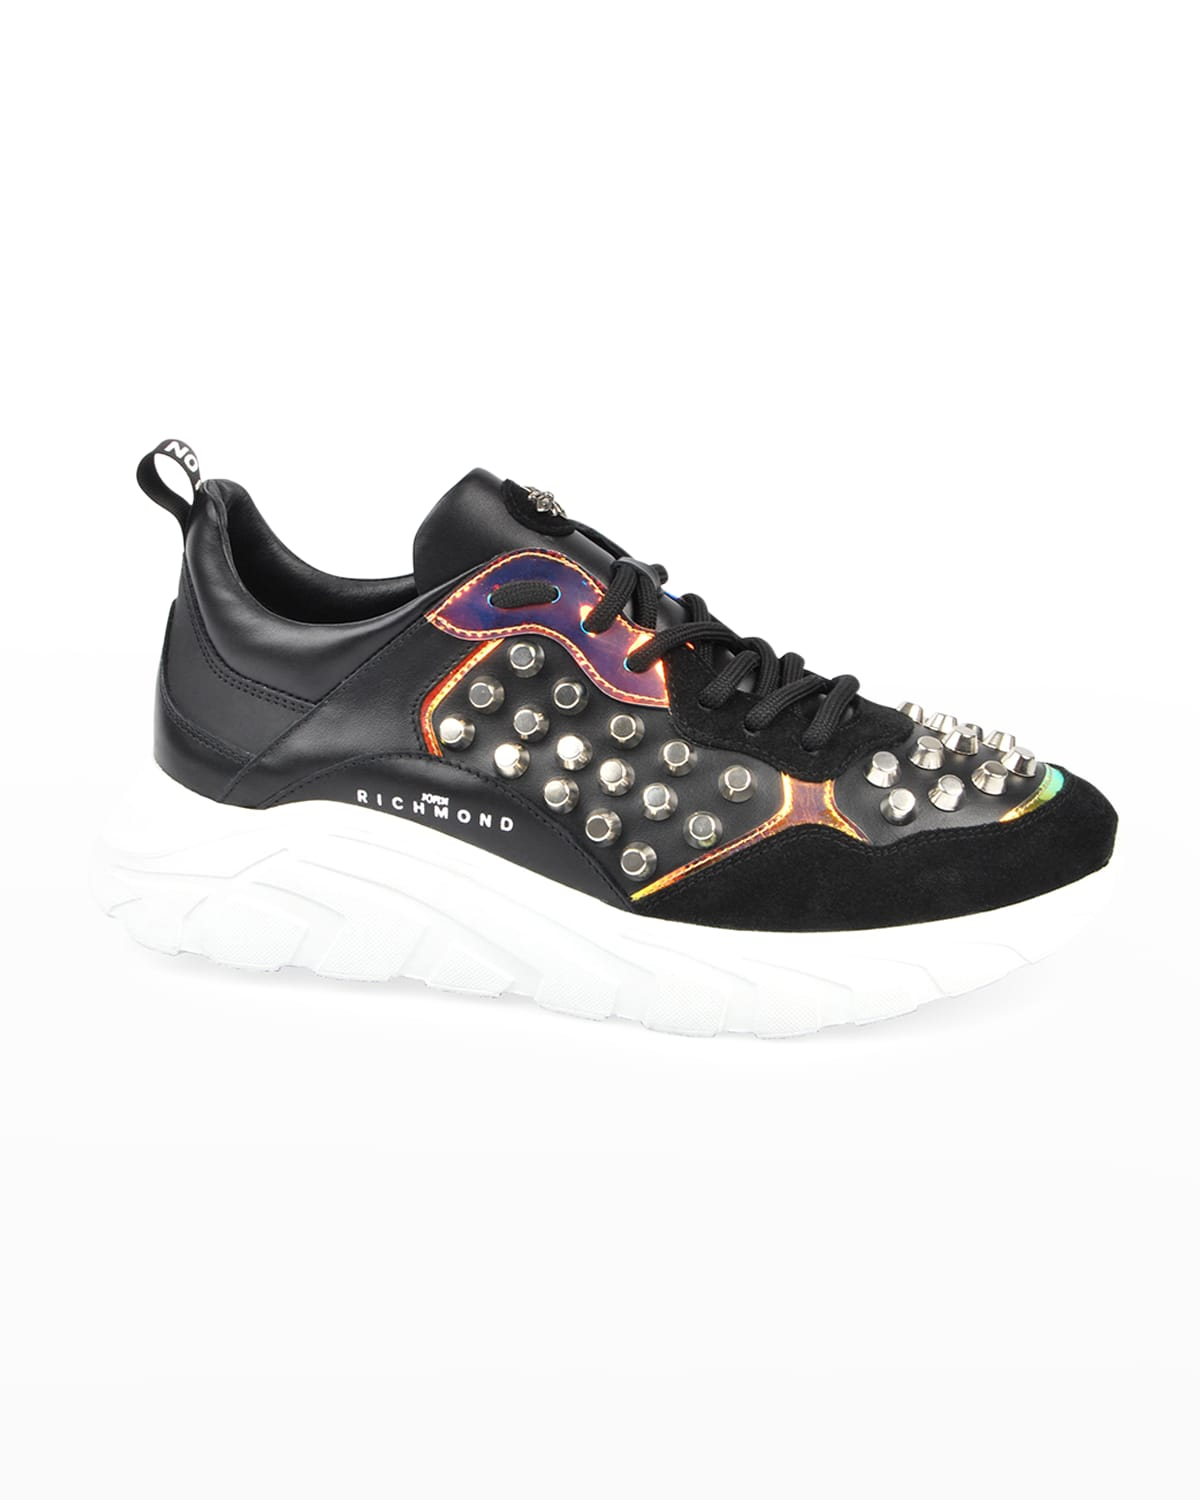 Men's Reflective Studded Low-Top Sneakers